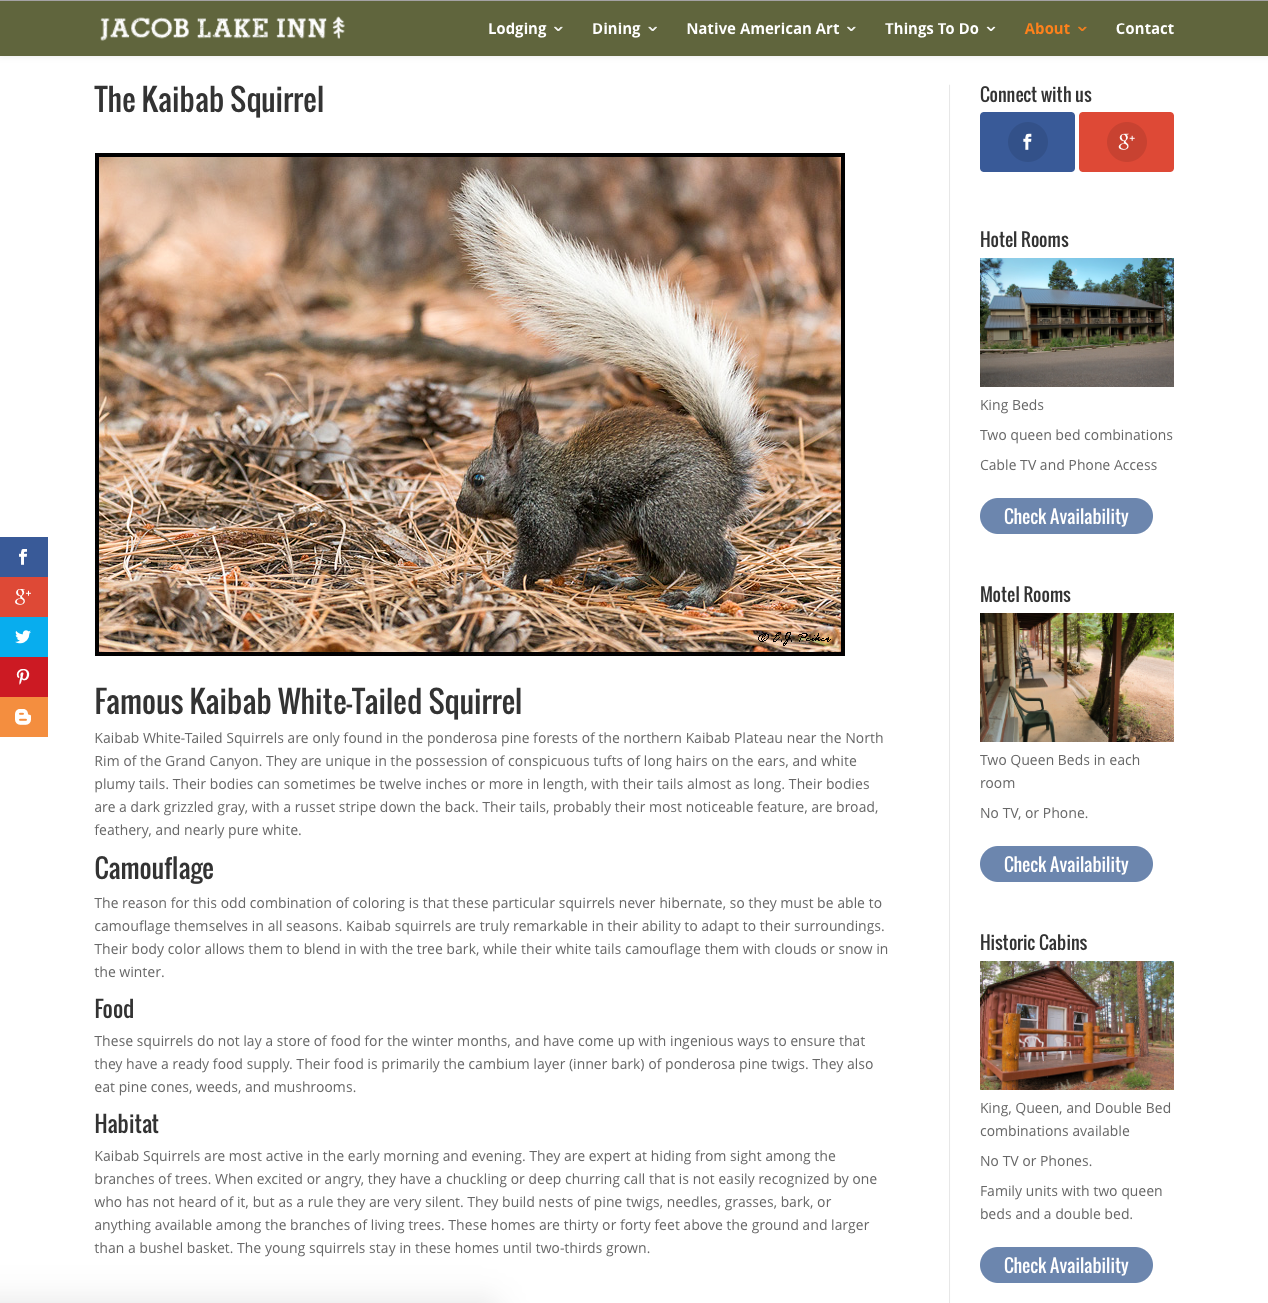 The Kaibab Squirrel Page